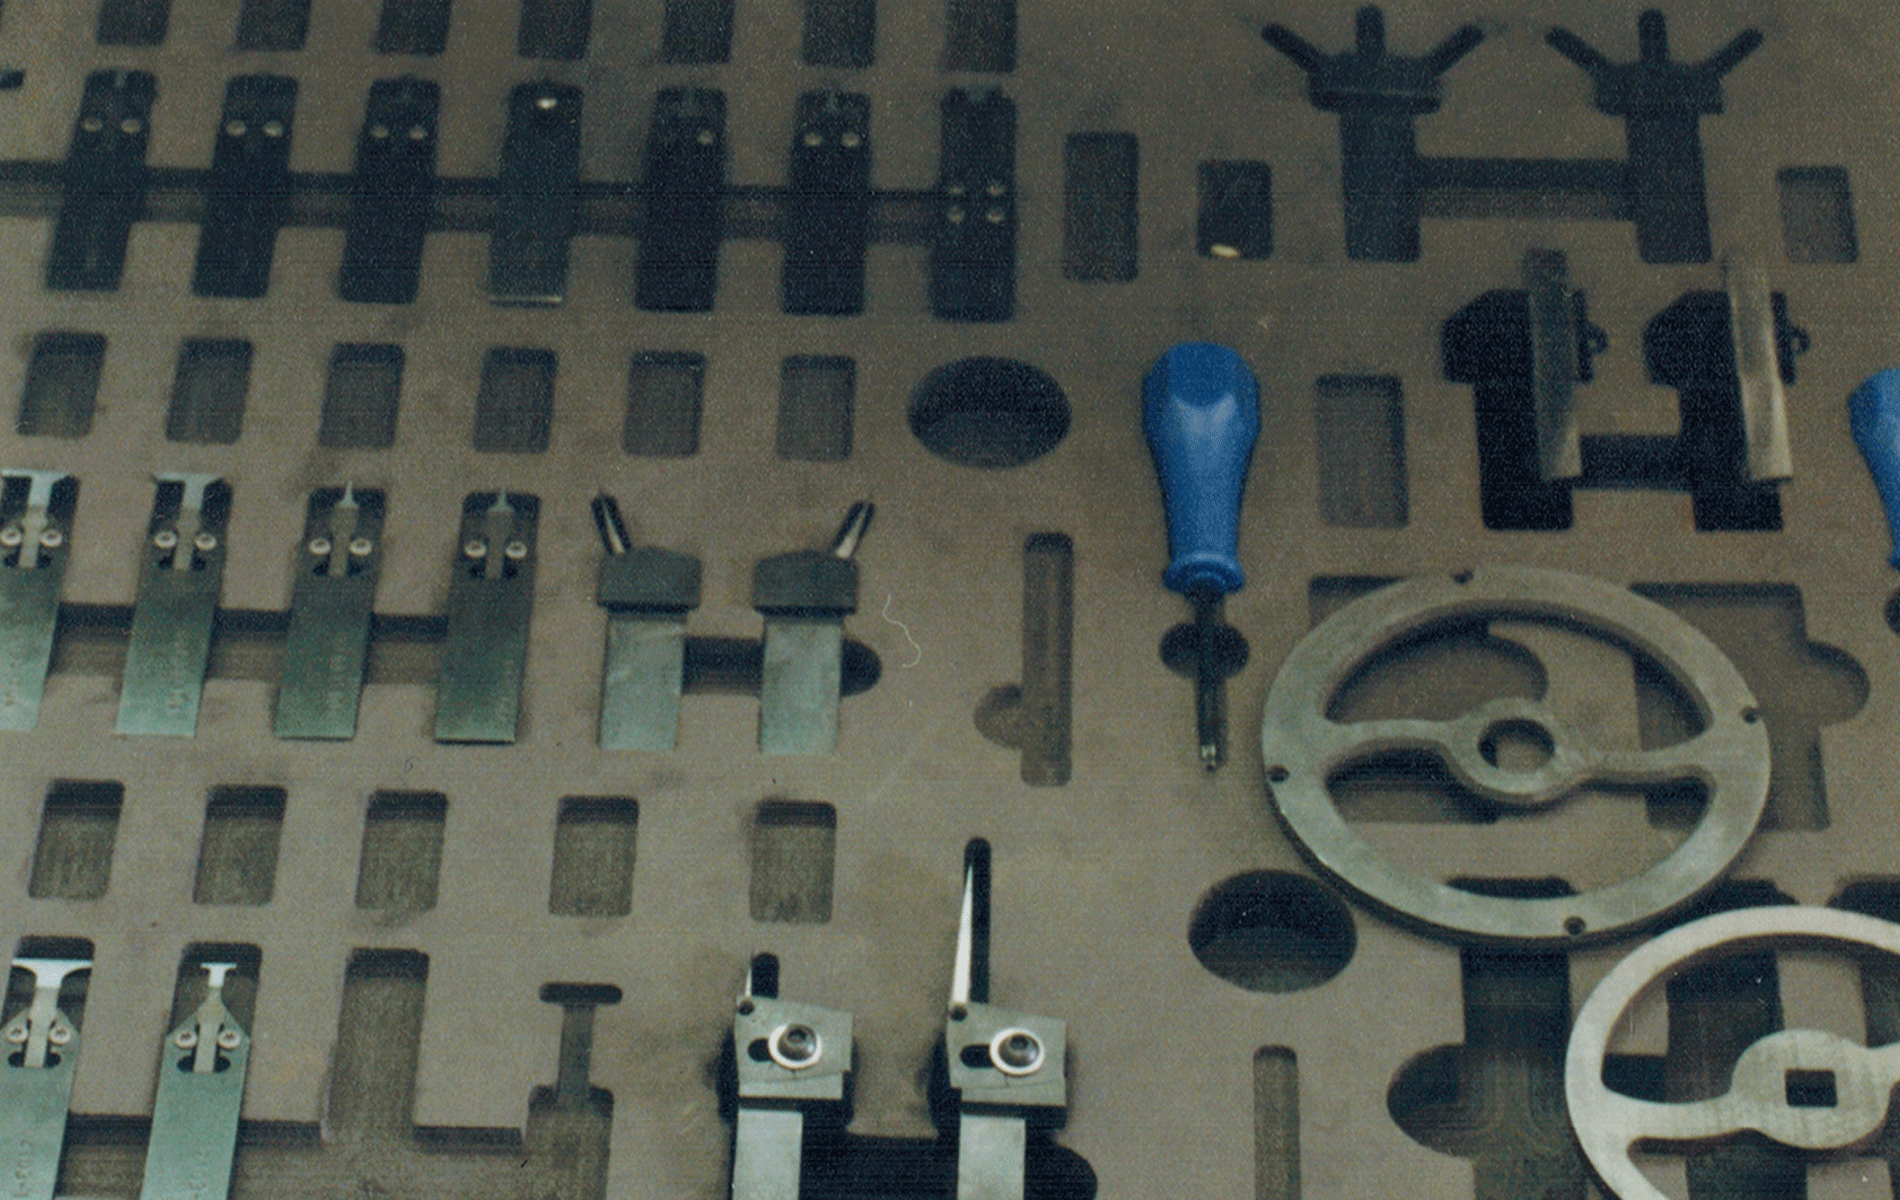 Tools and Holders